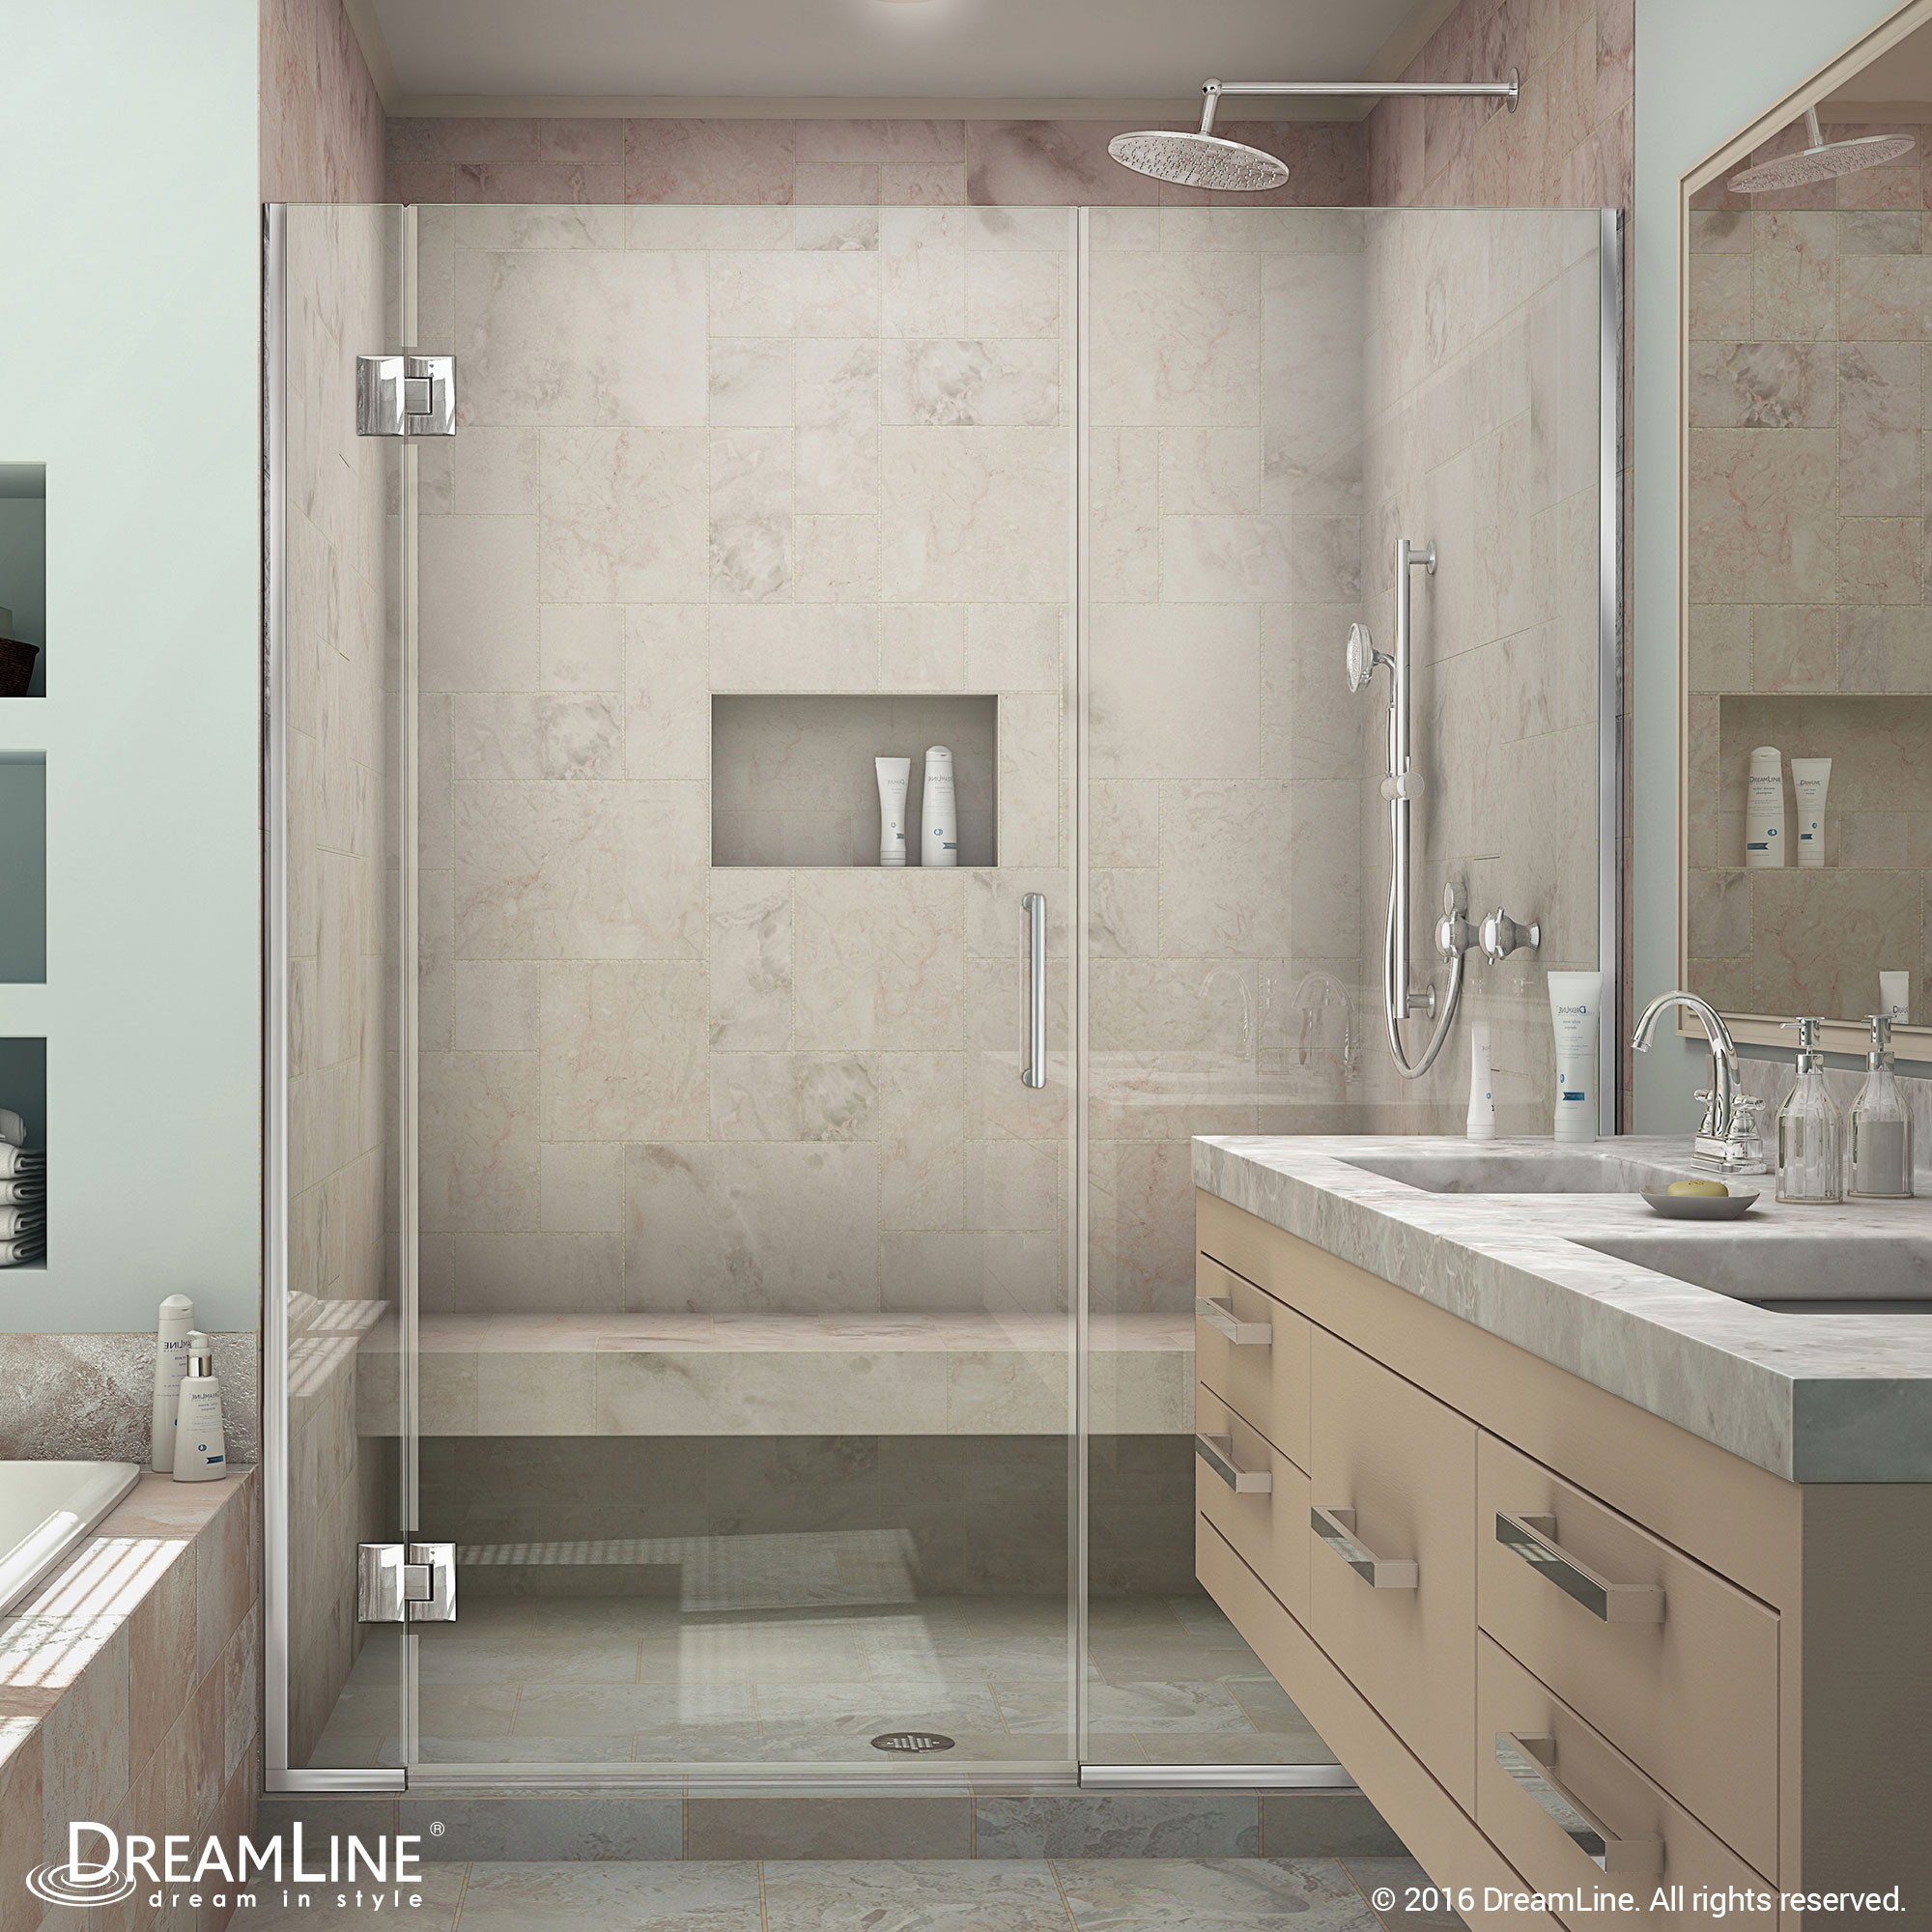 DreamLine D1251472-01 Unidoor-X 45 - 45 1/2 in. W x 72 in. H Hinged Shower Door in Chrome